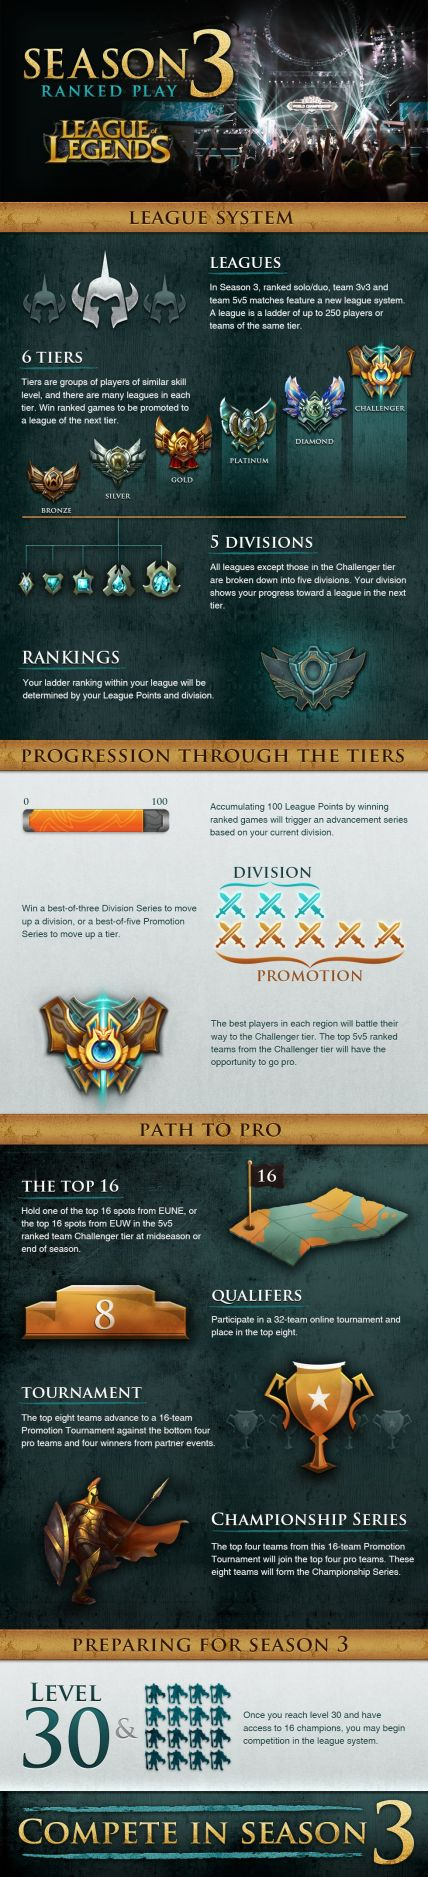 League of Legends Season 3 Infographic